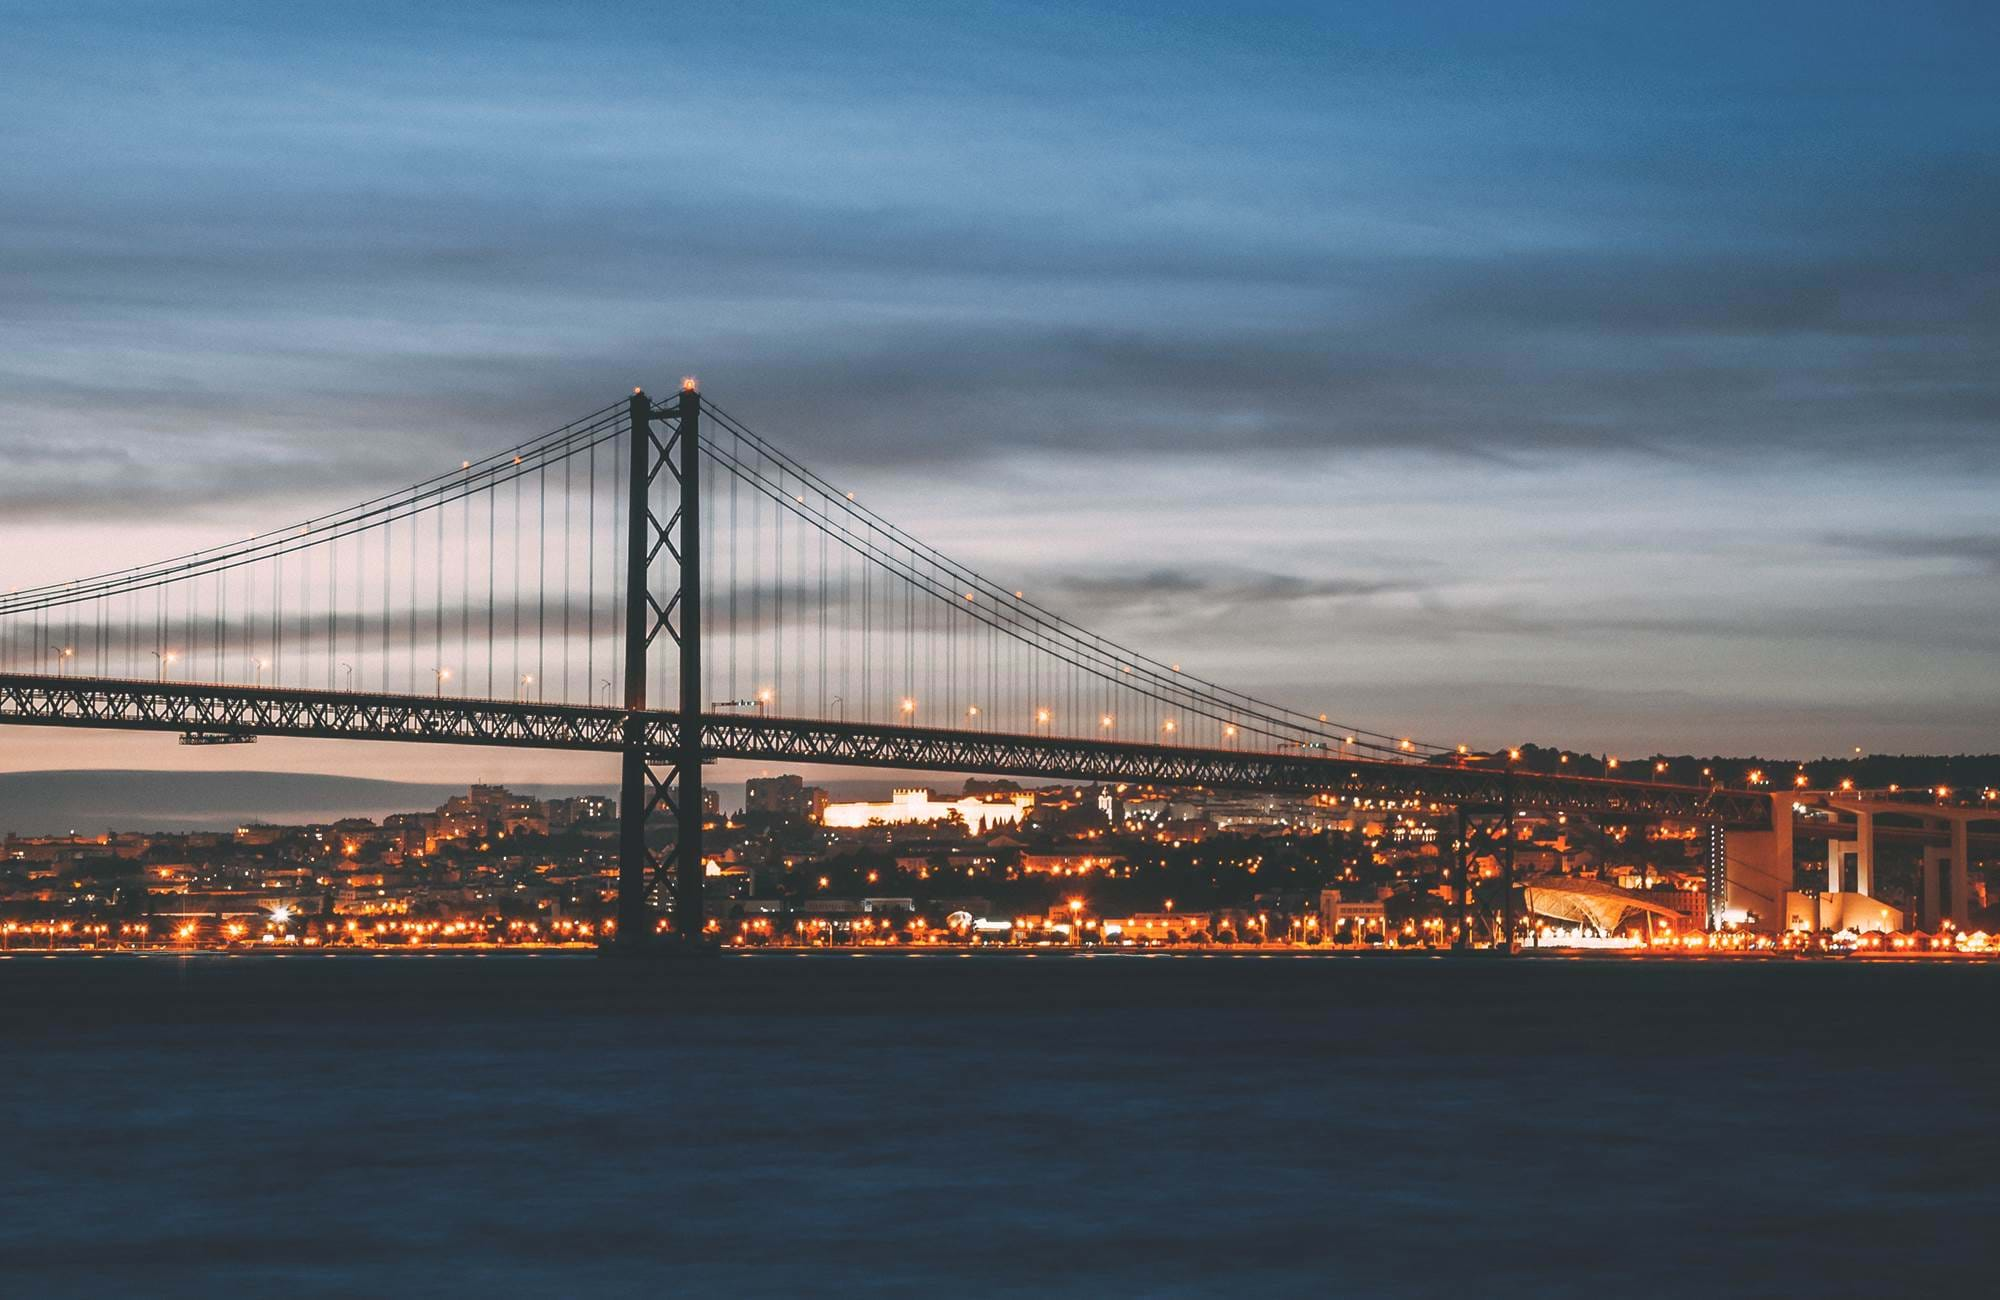 lisbon-25-de-abril-bridge-at-night-cover